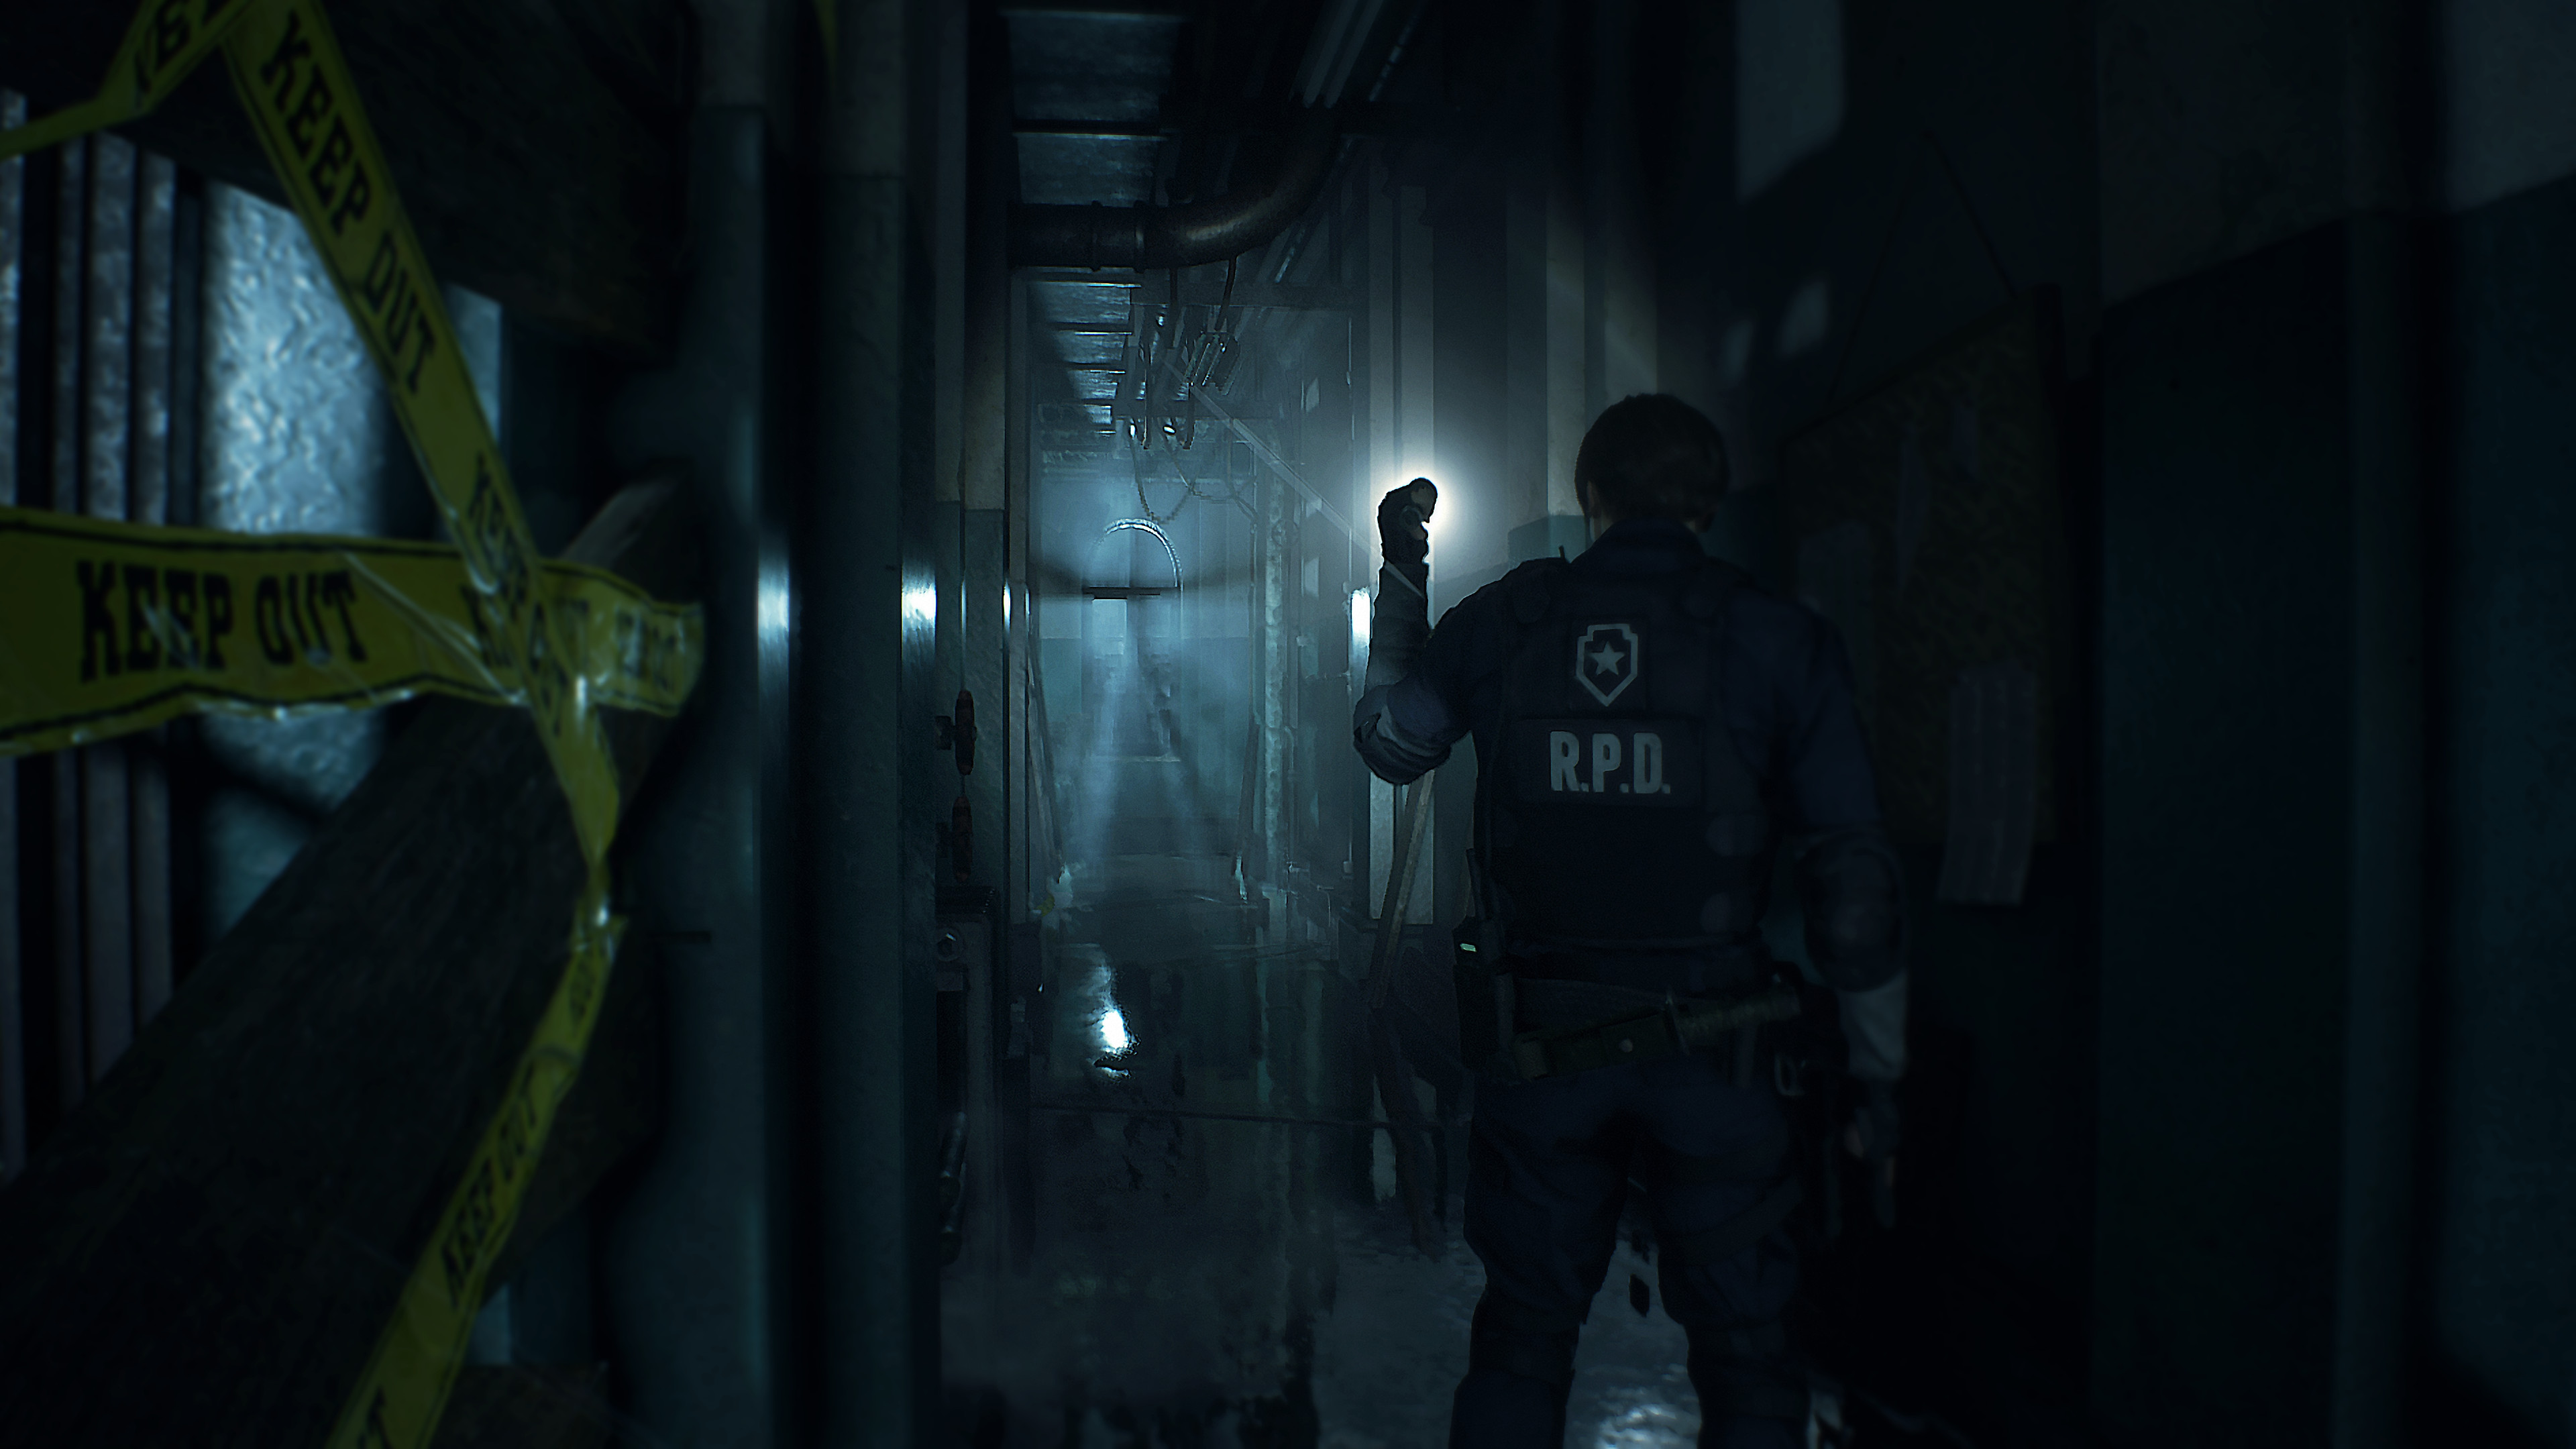 Resident Evil 2 Game Features Screenshot 1 - Exploring a Dark Corridor